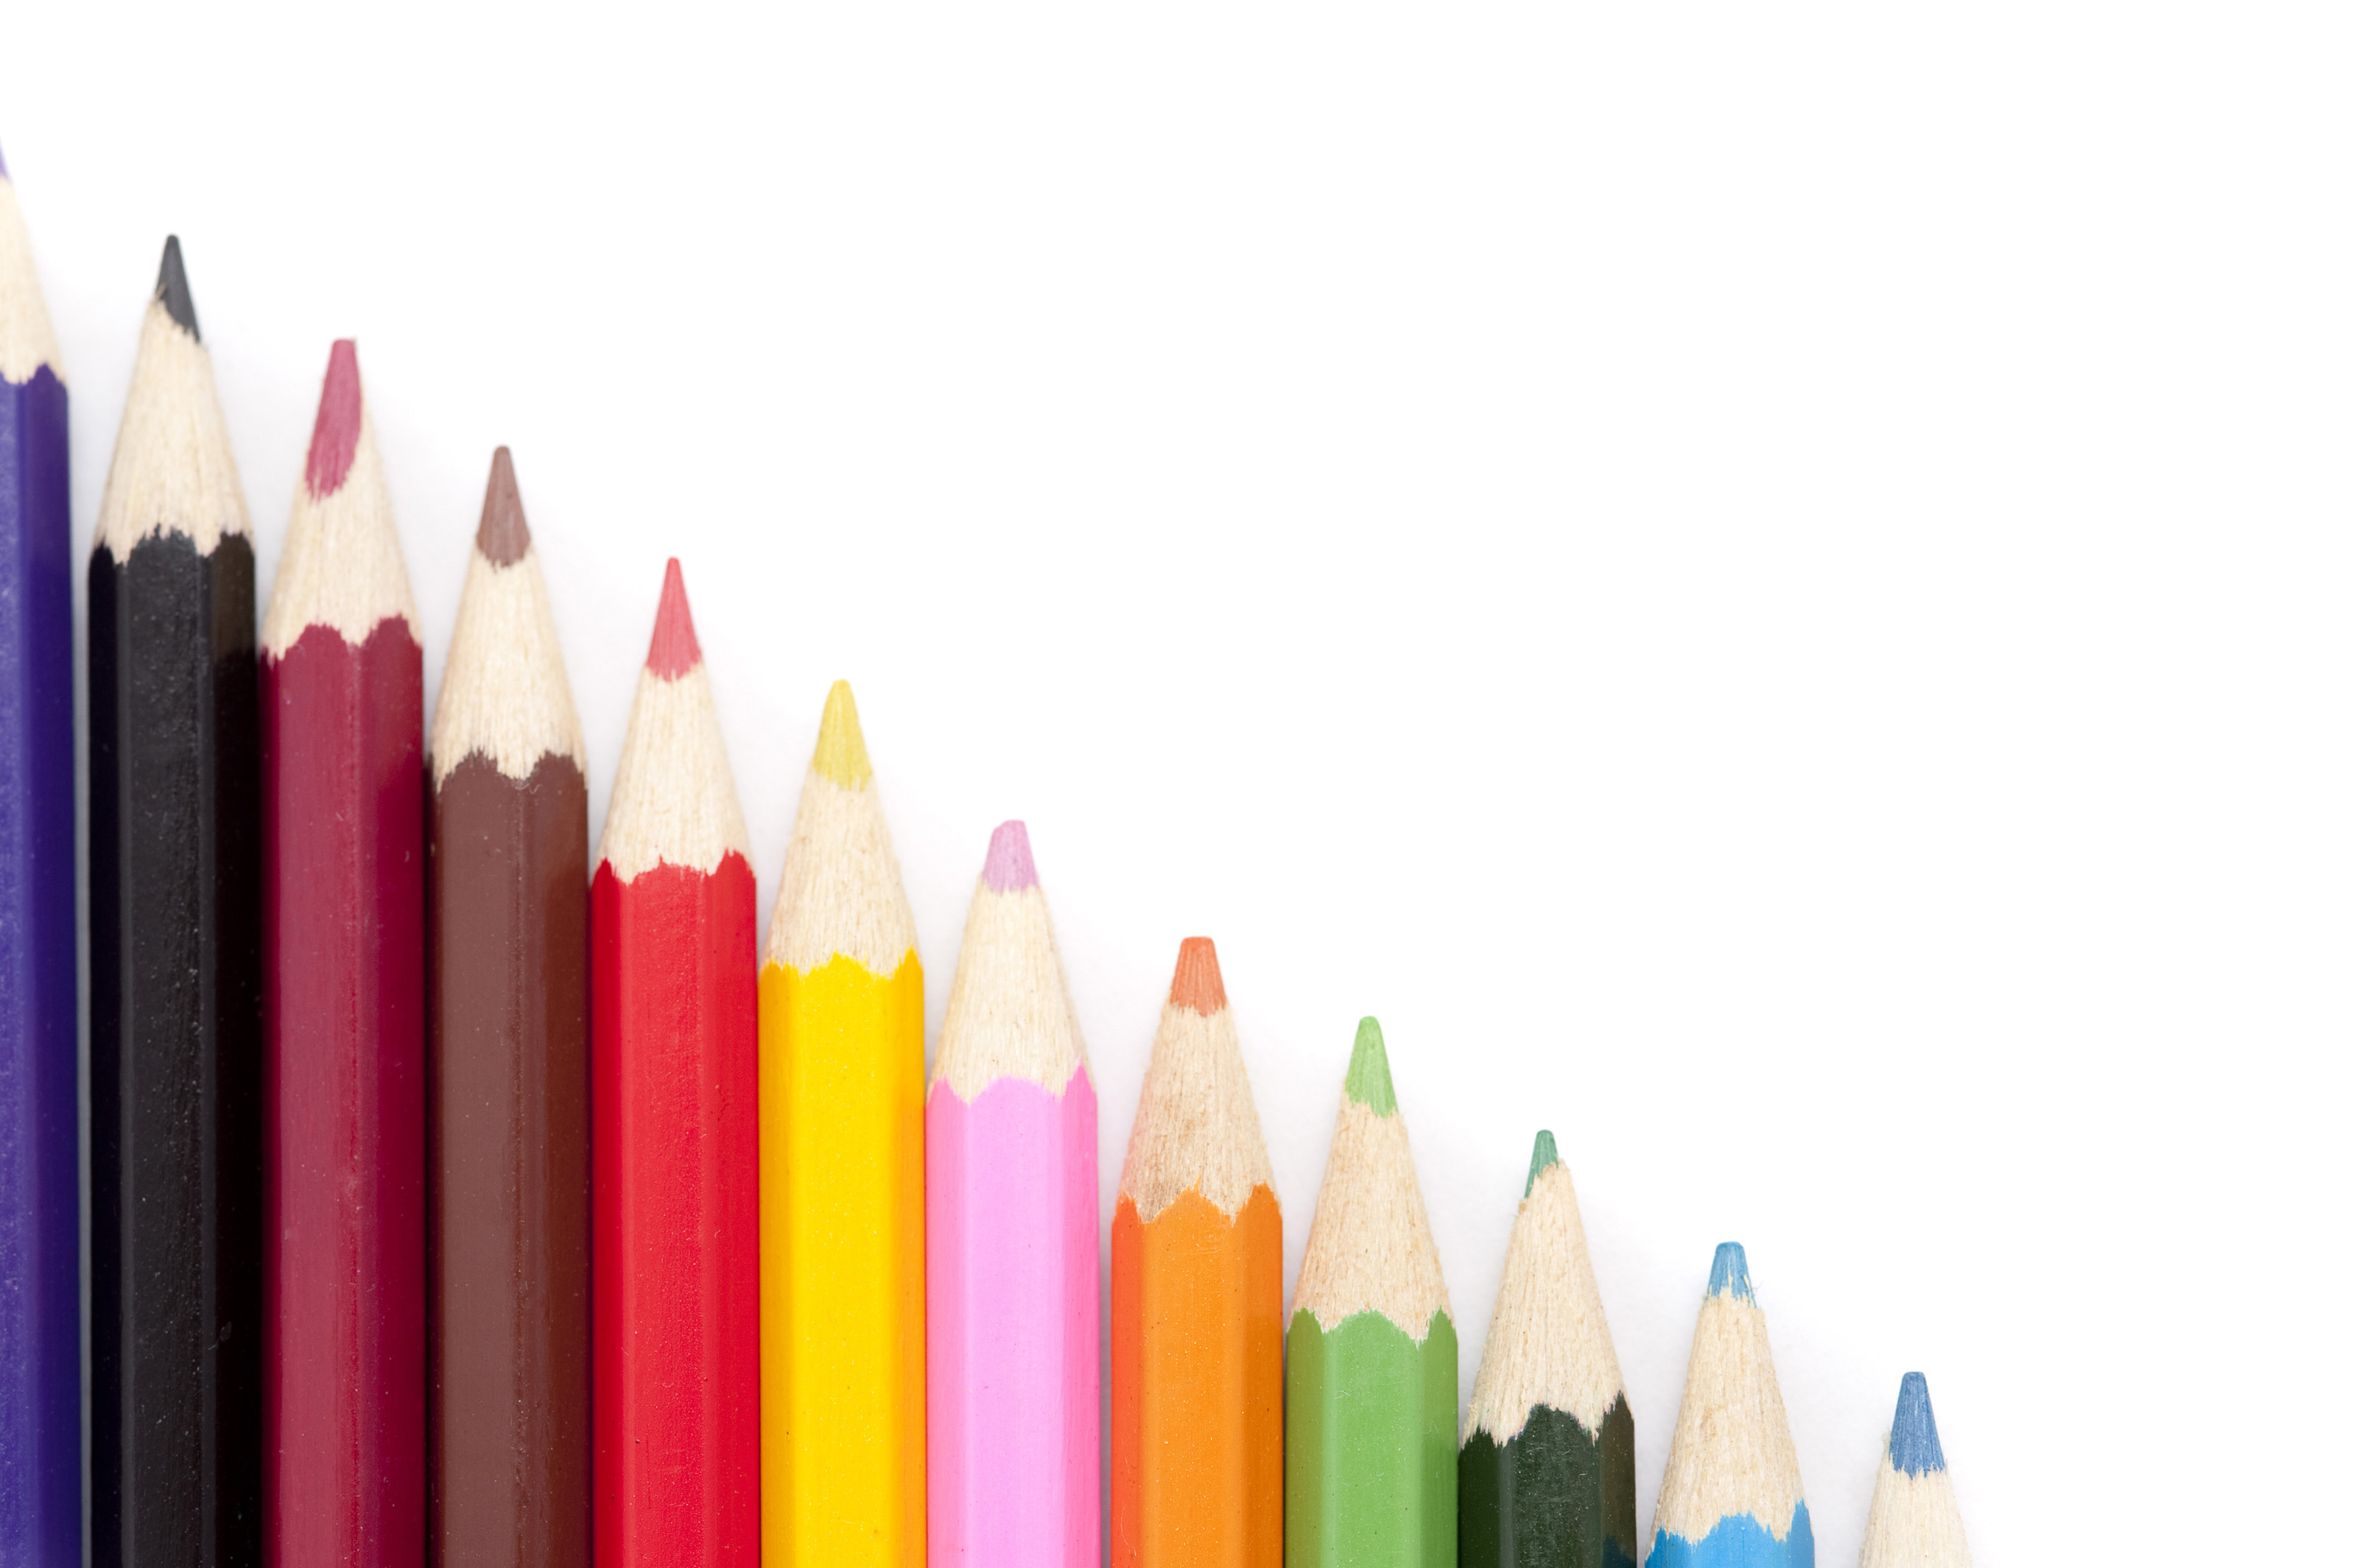 Free Stock Photo 7015 Coloring pencil stairs   freeimageslive